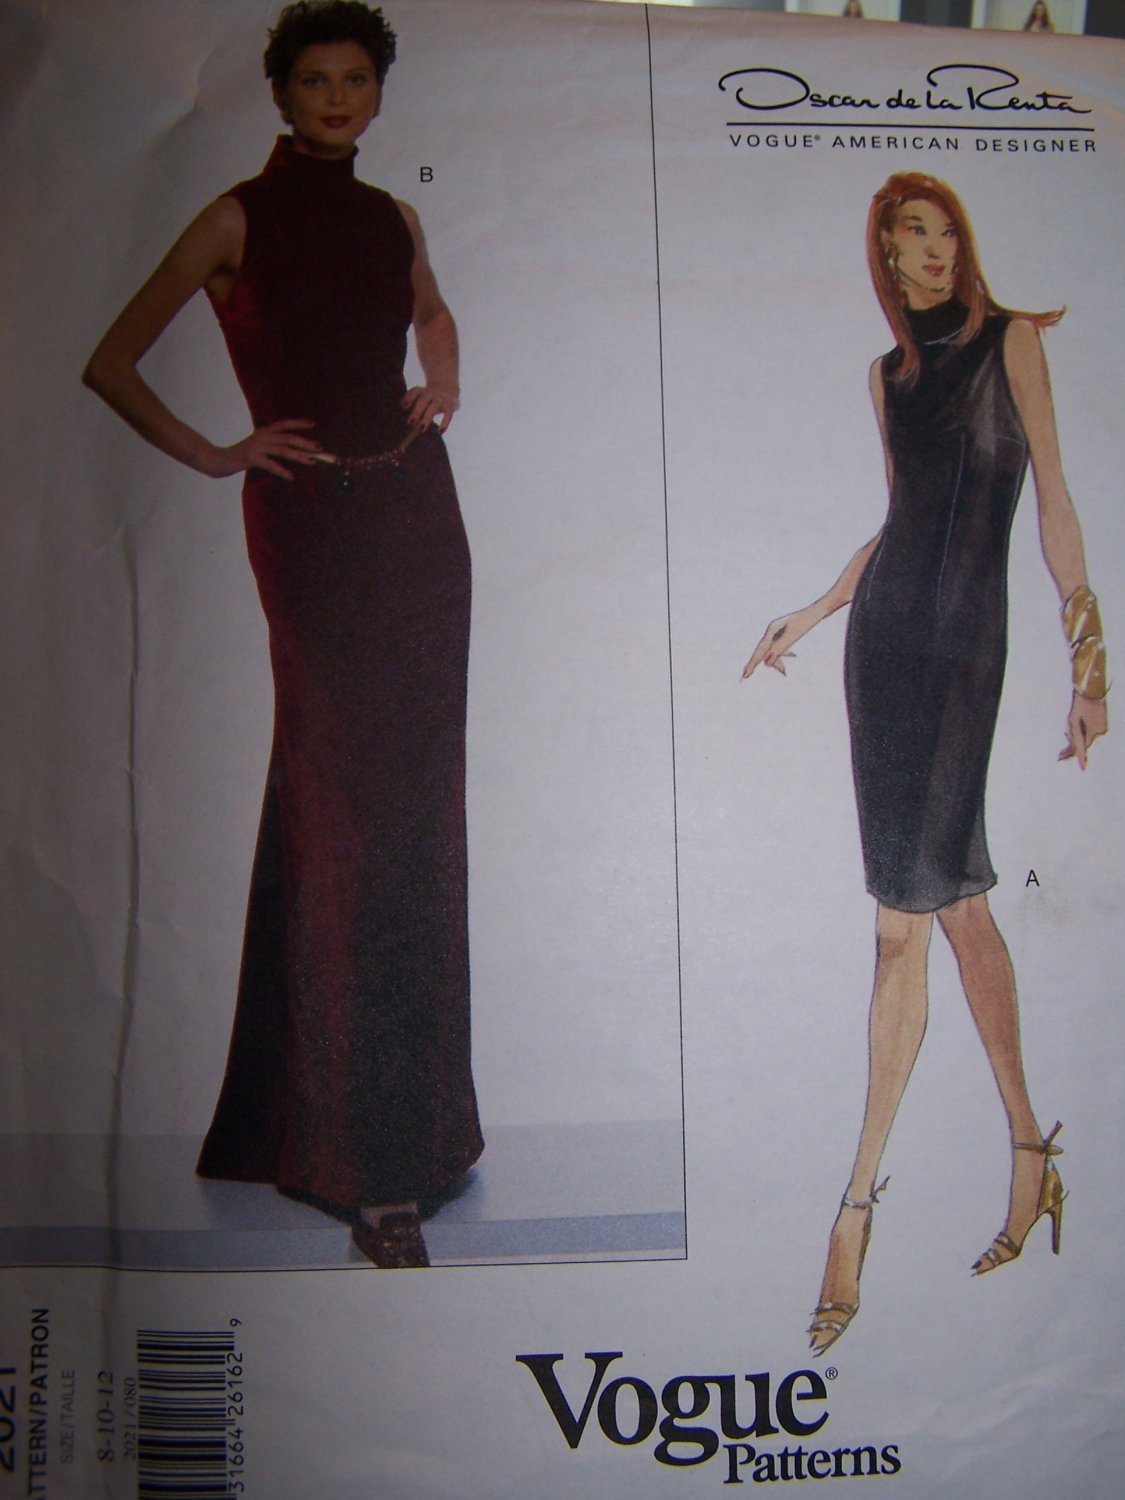 Vogue 2021 Sewing Pattern Oscar de la Renta Dress Sizes 8-12